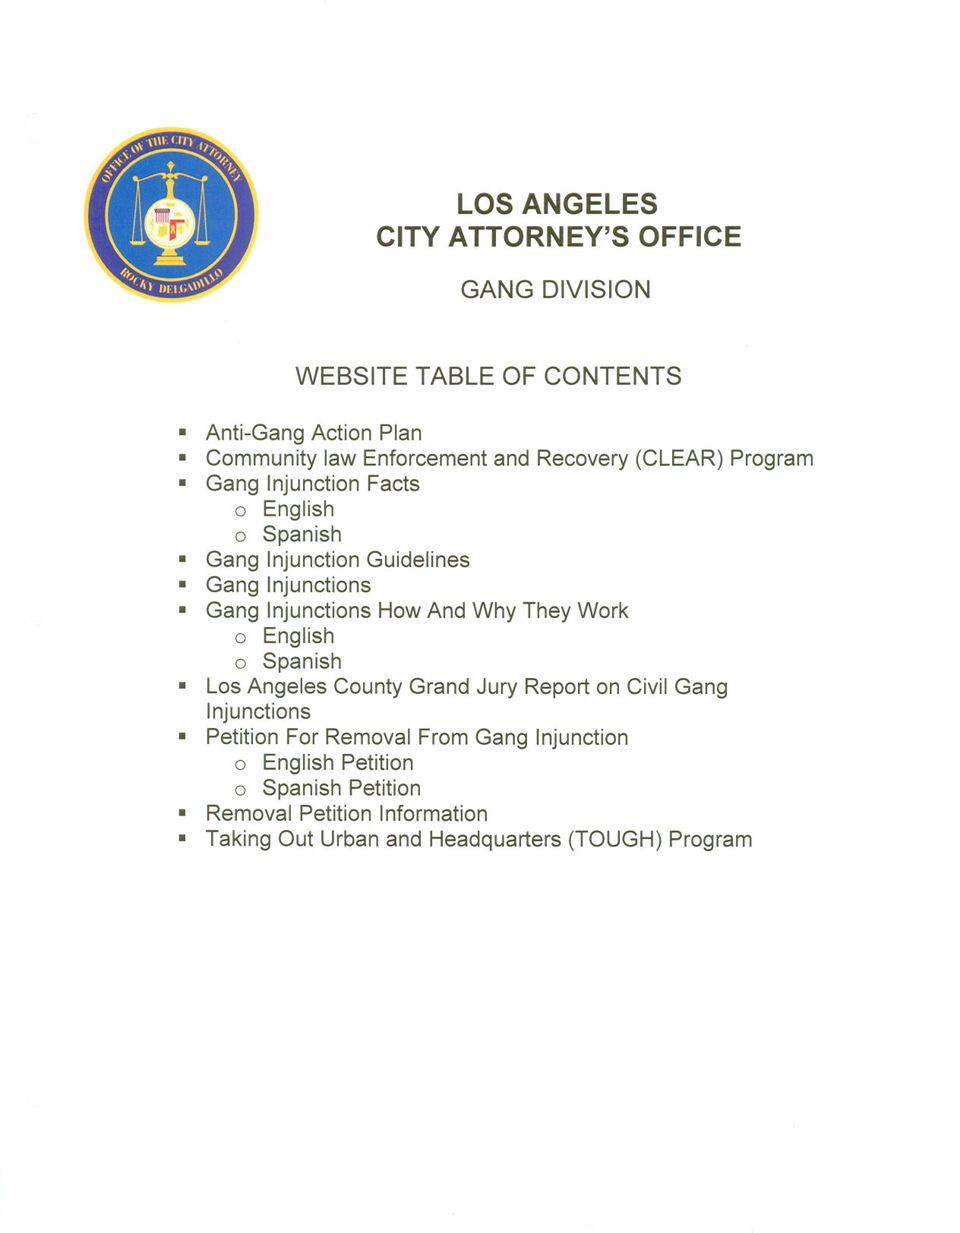 How And Why They Work o English o Spanish Los Angeles County Grand Jury Report on Civil Gang Injunctions Petition For Removal